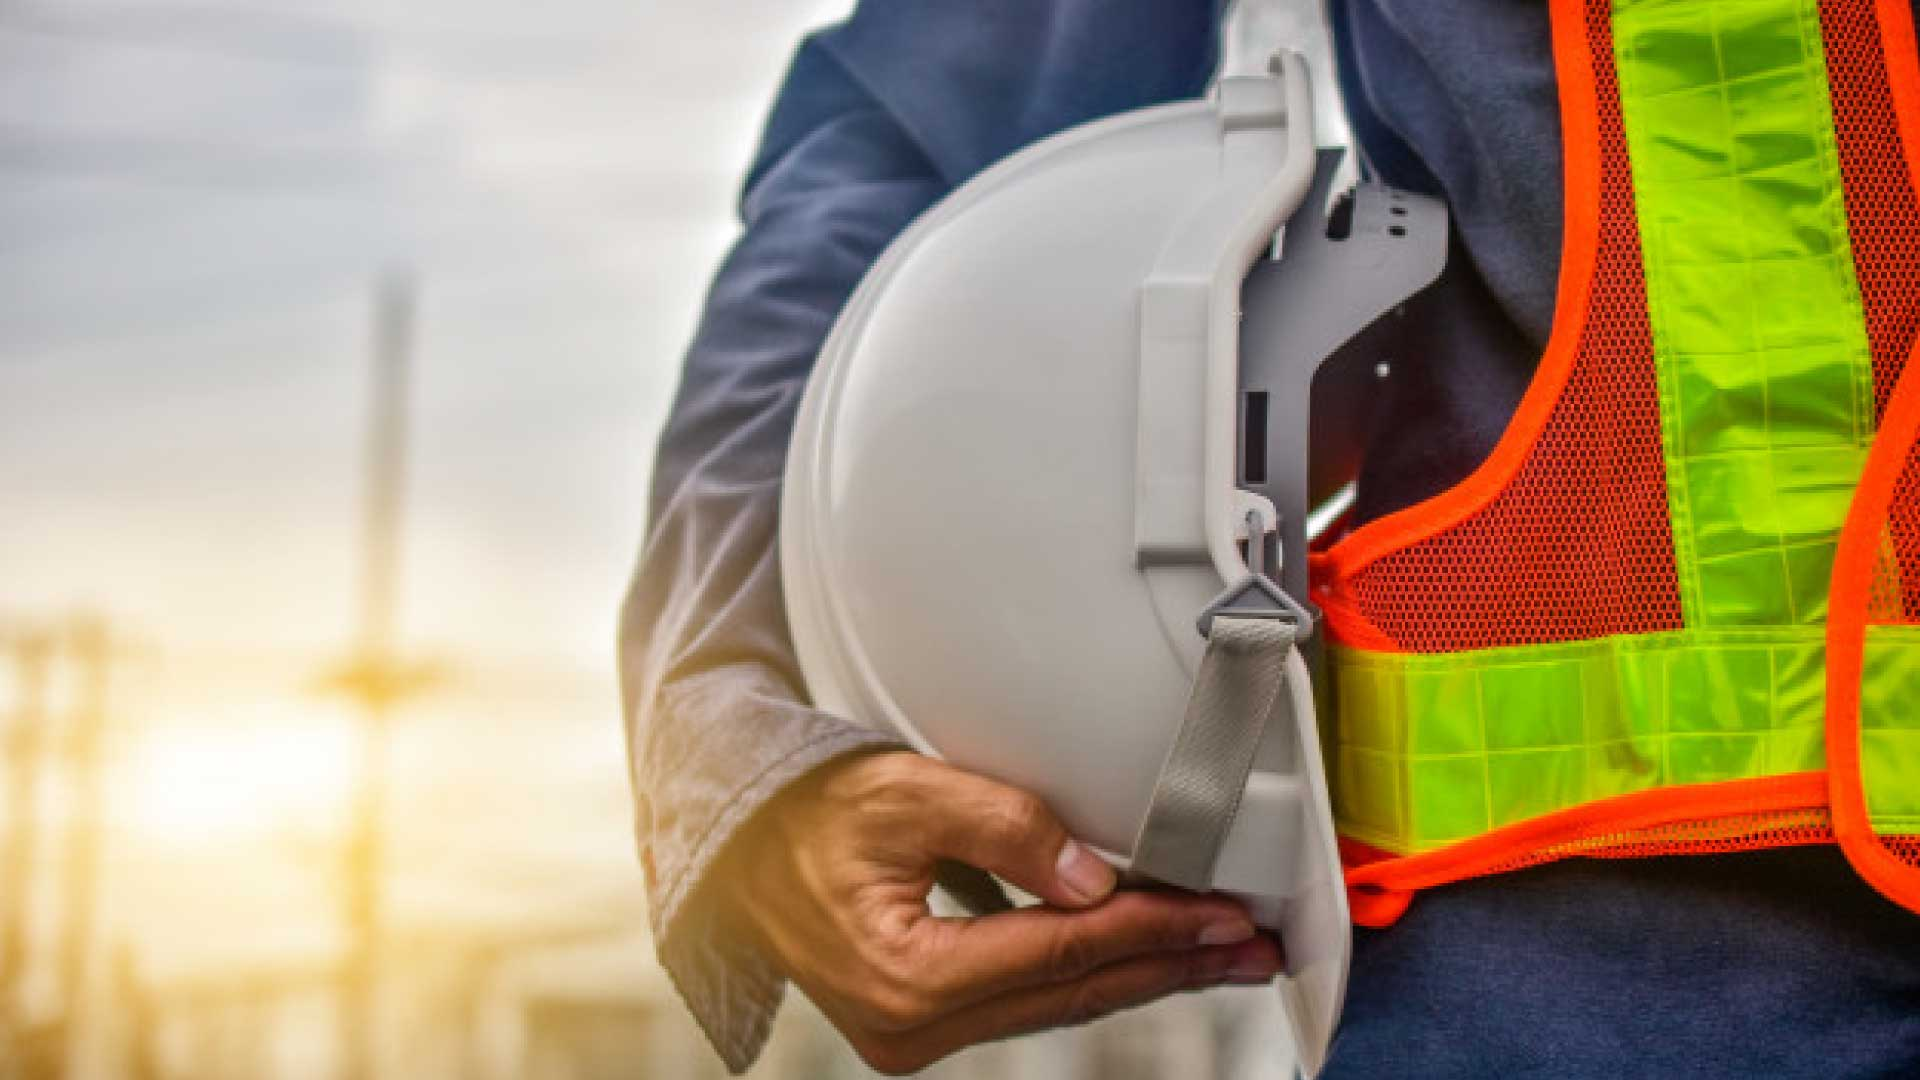 construction safety video